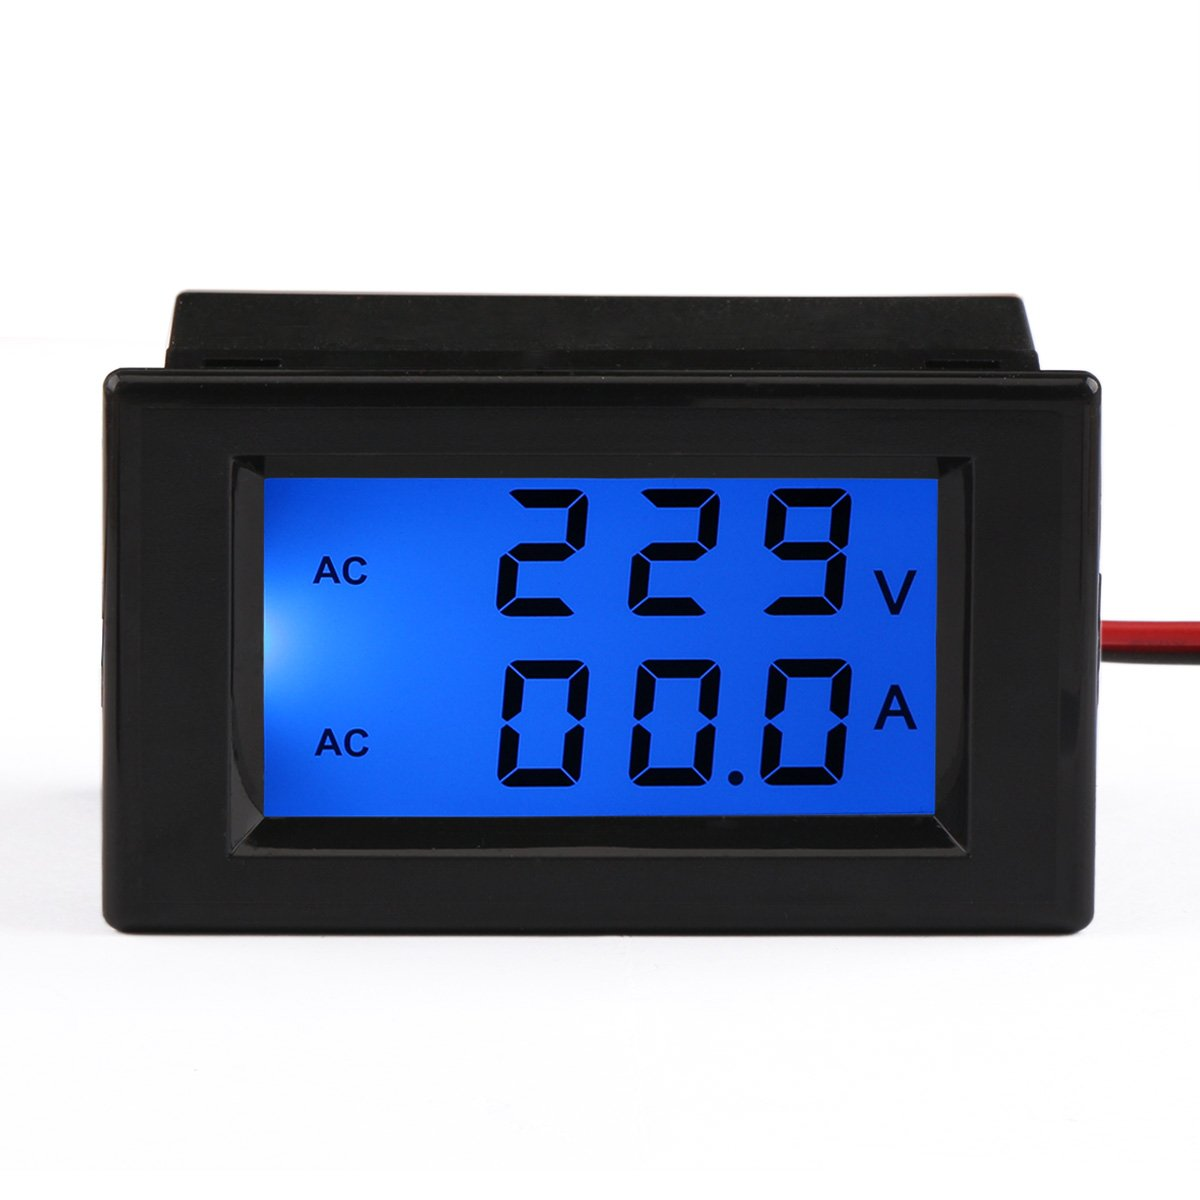 DROK 100105 AC 100-300V 100A Digital Voltage Current Multimeter LCD Volt Amp Meter Gauge Panel Tester Voltage Amperage Dual Display Power Monitor by DROK